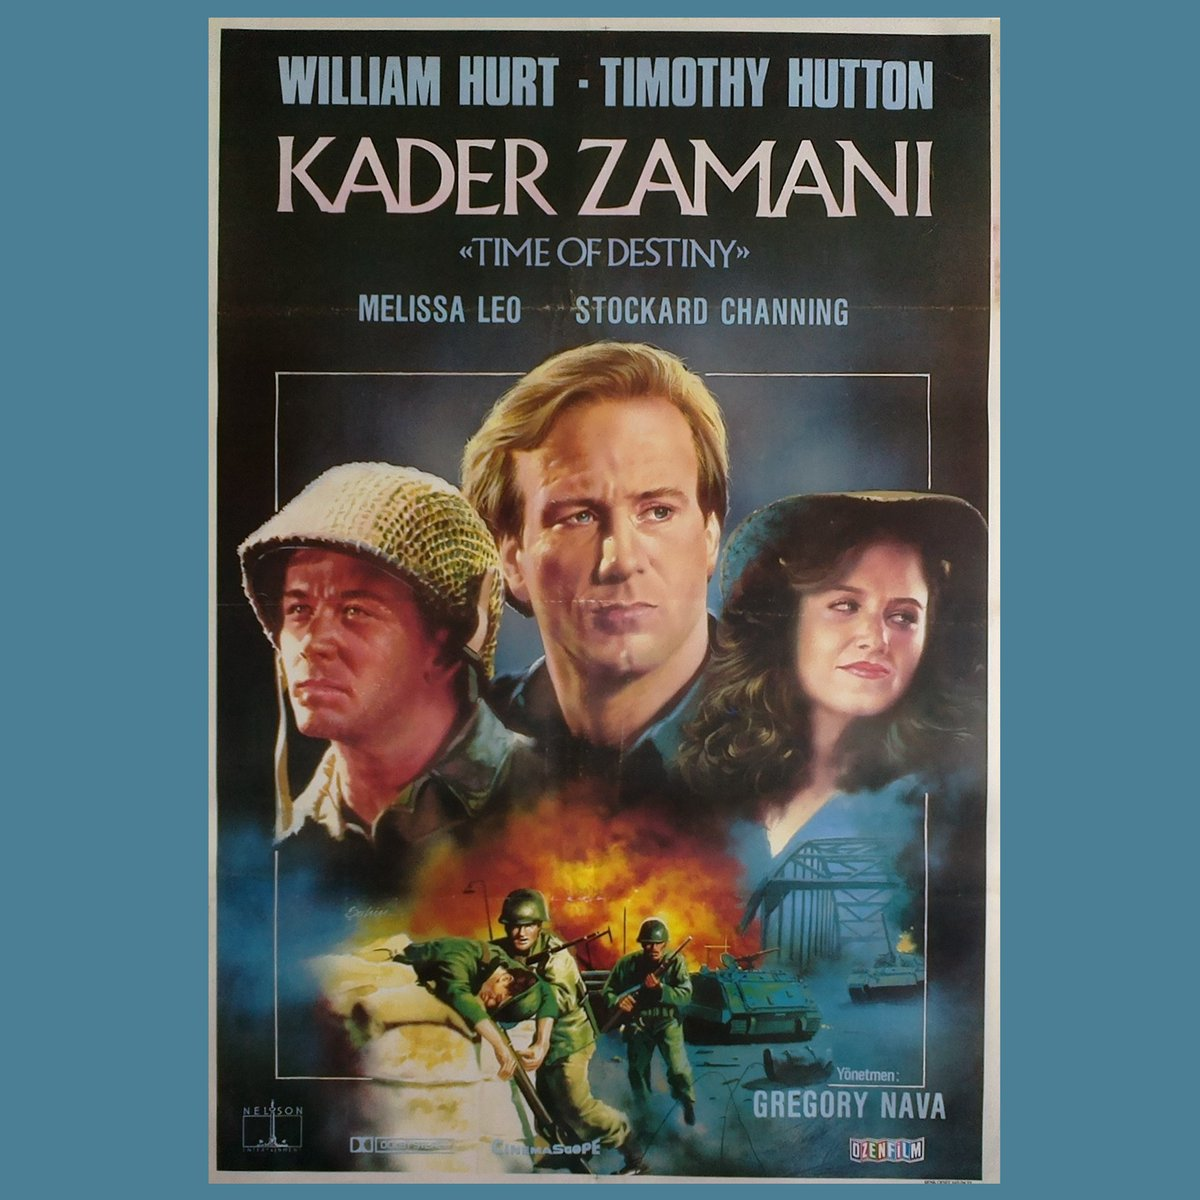 KADER ZAMANI 1988 A Time of Destiny William Hurt / Timothy Hutton  Turkish edition #vintage #movie #poster #posters #movieposter #cinema #sinema #film #films #collection #photo #art